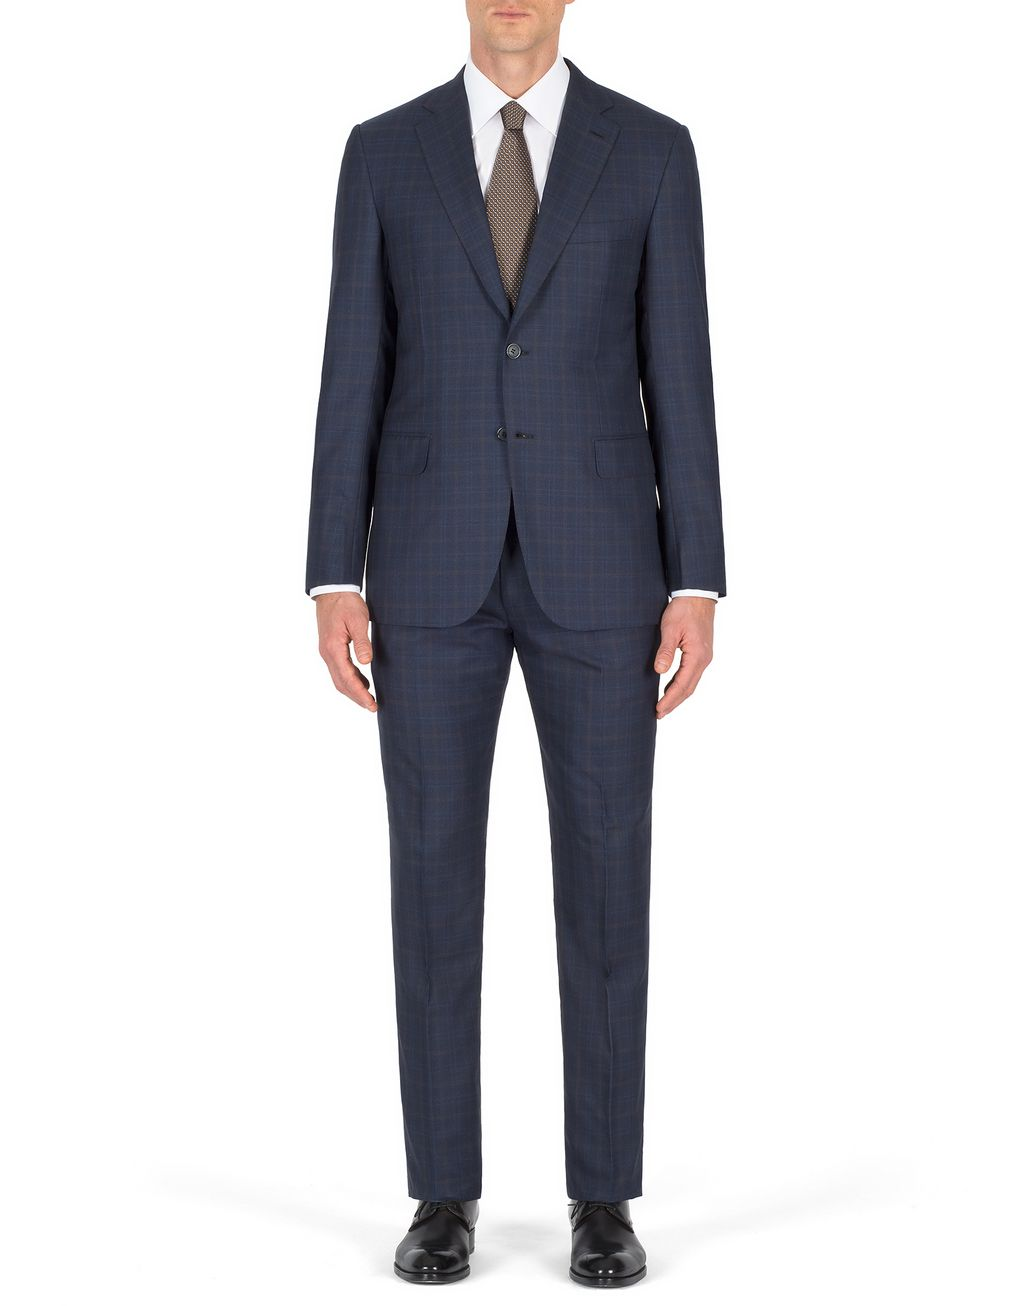 BRIONI Abito Brunico Blu Navy con Motivo a Quadri Suits & Jackets [*** pickupInStoreShippingNotGuaranteed_info ***] r